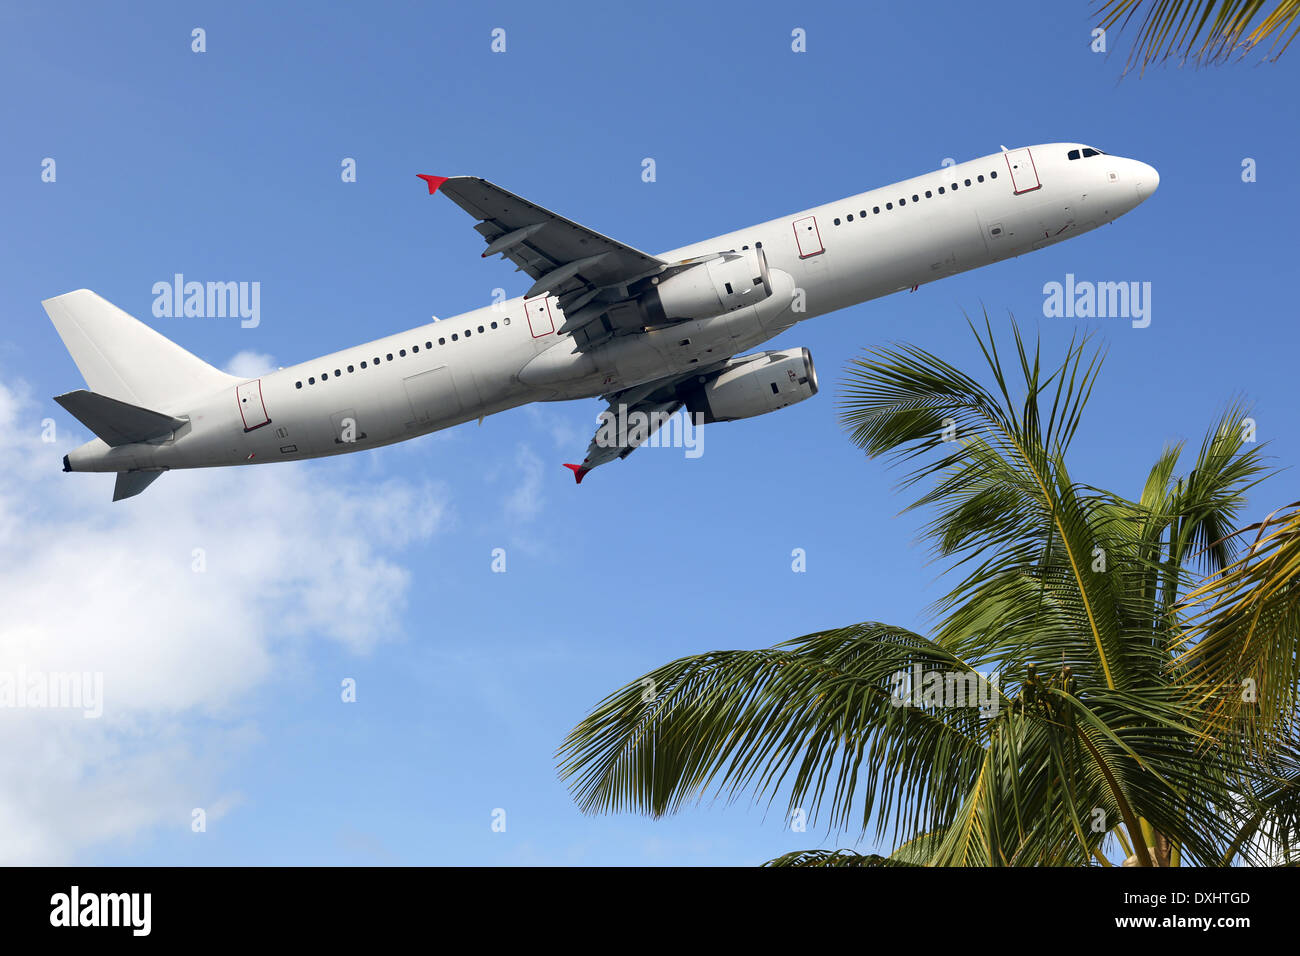 An Airplane taking off between palm trees into vacation during a journey - Stock Image